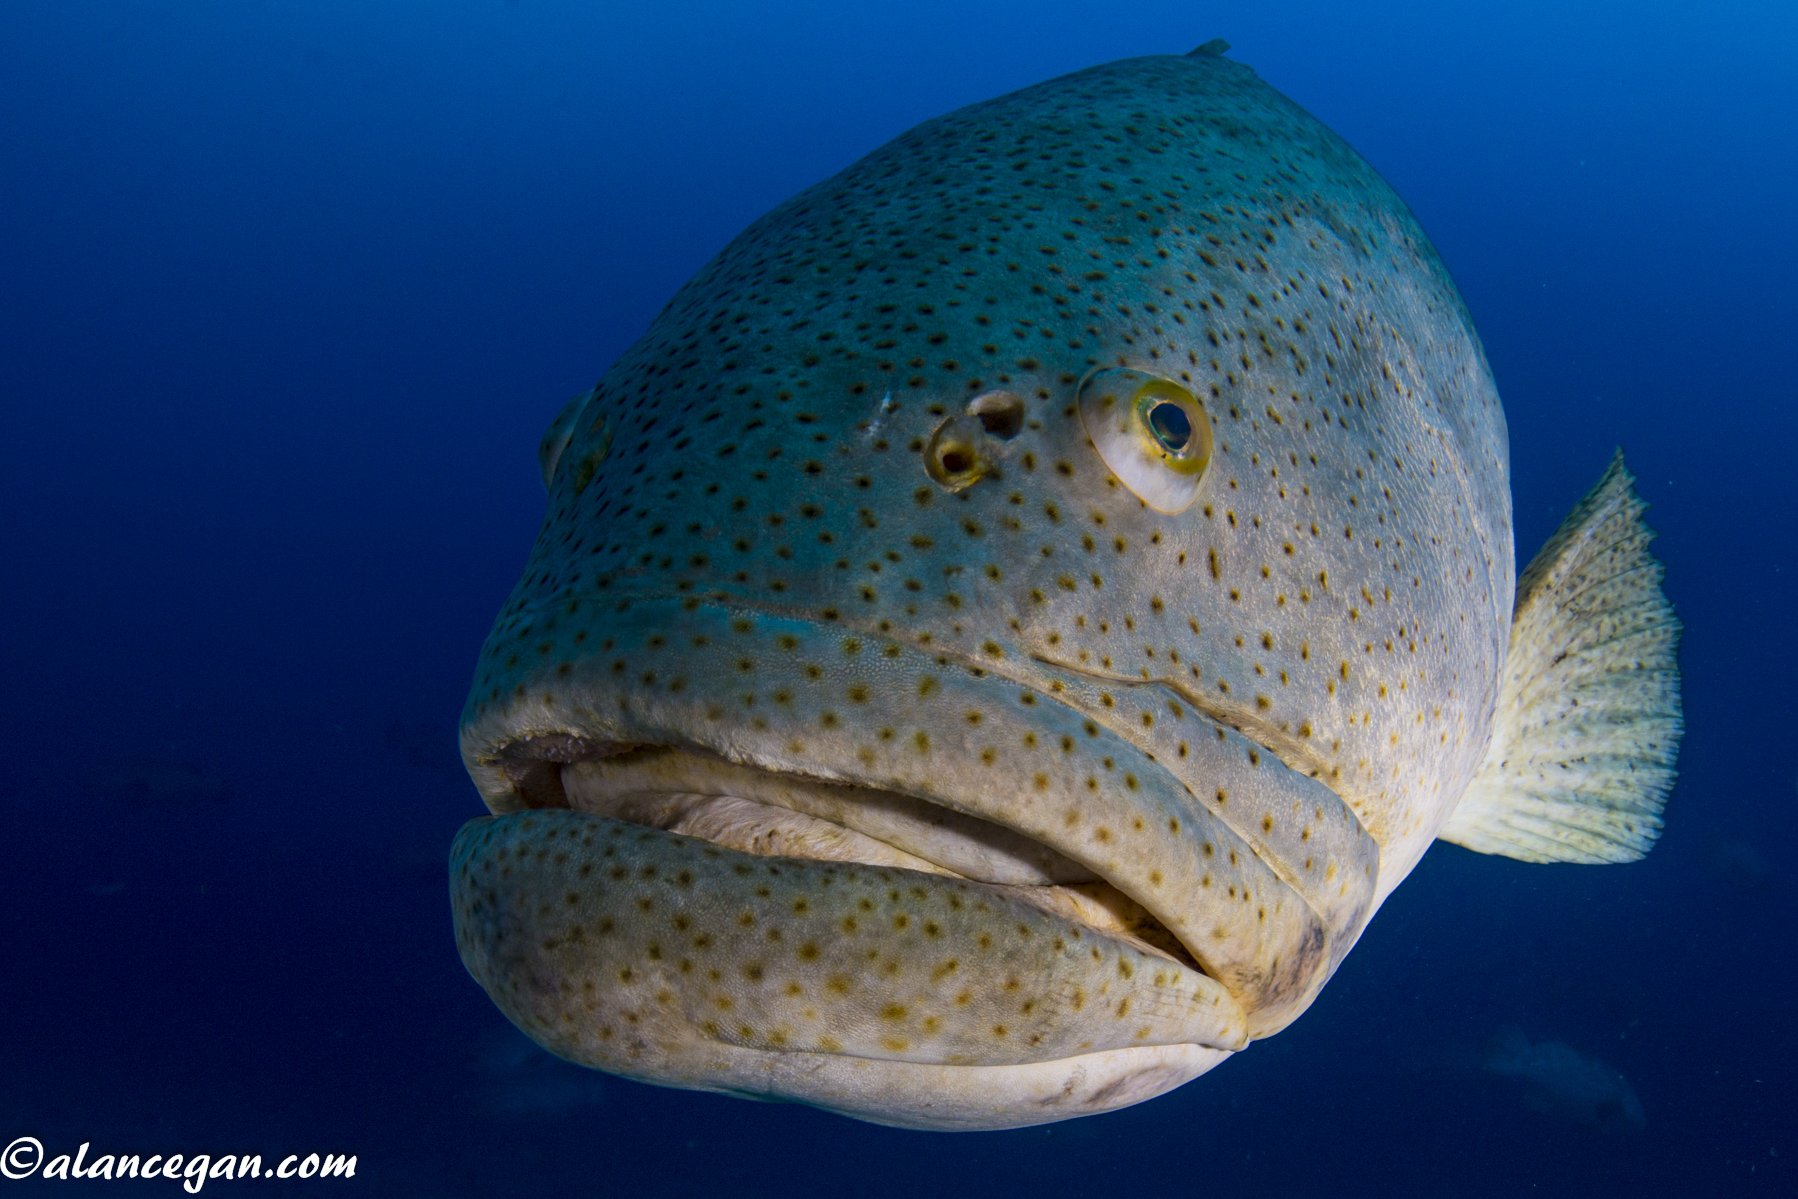 Underwater photograph of a Goliath Grouper